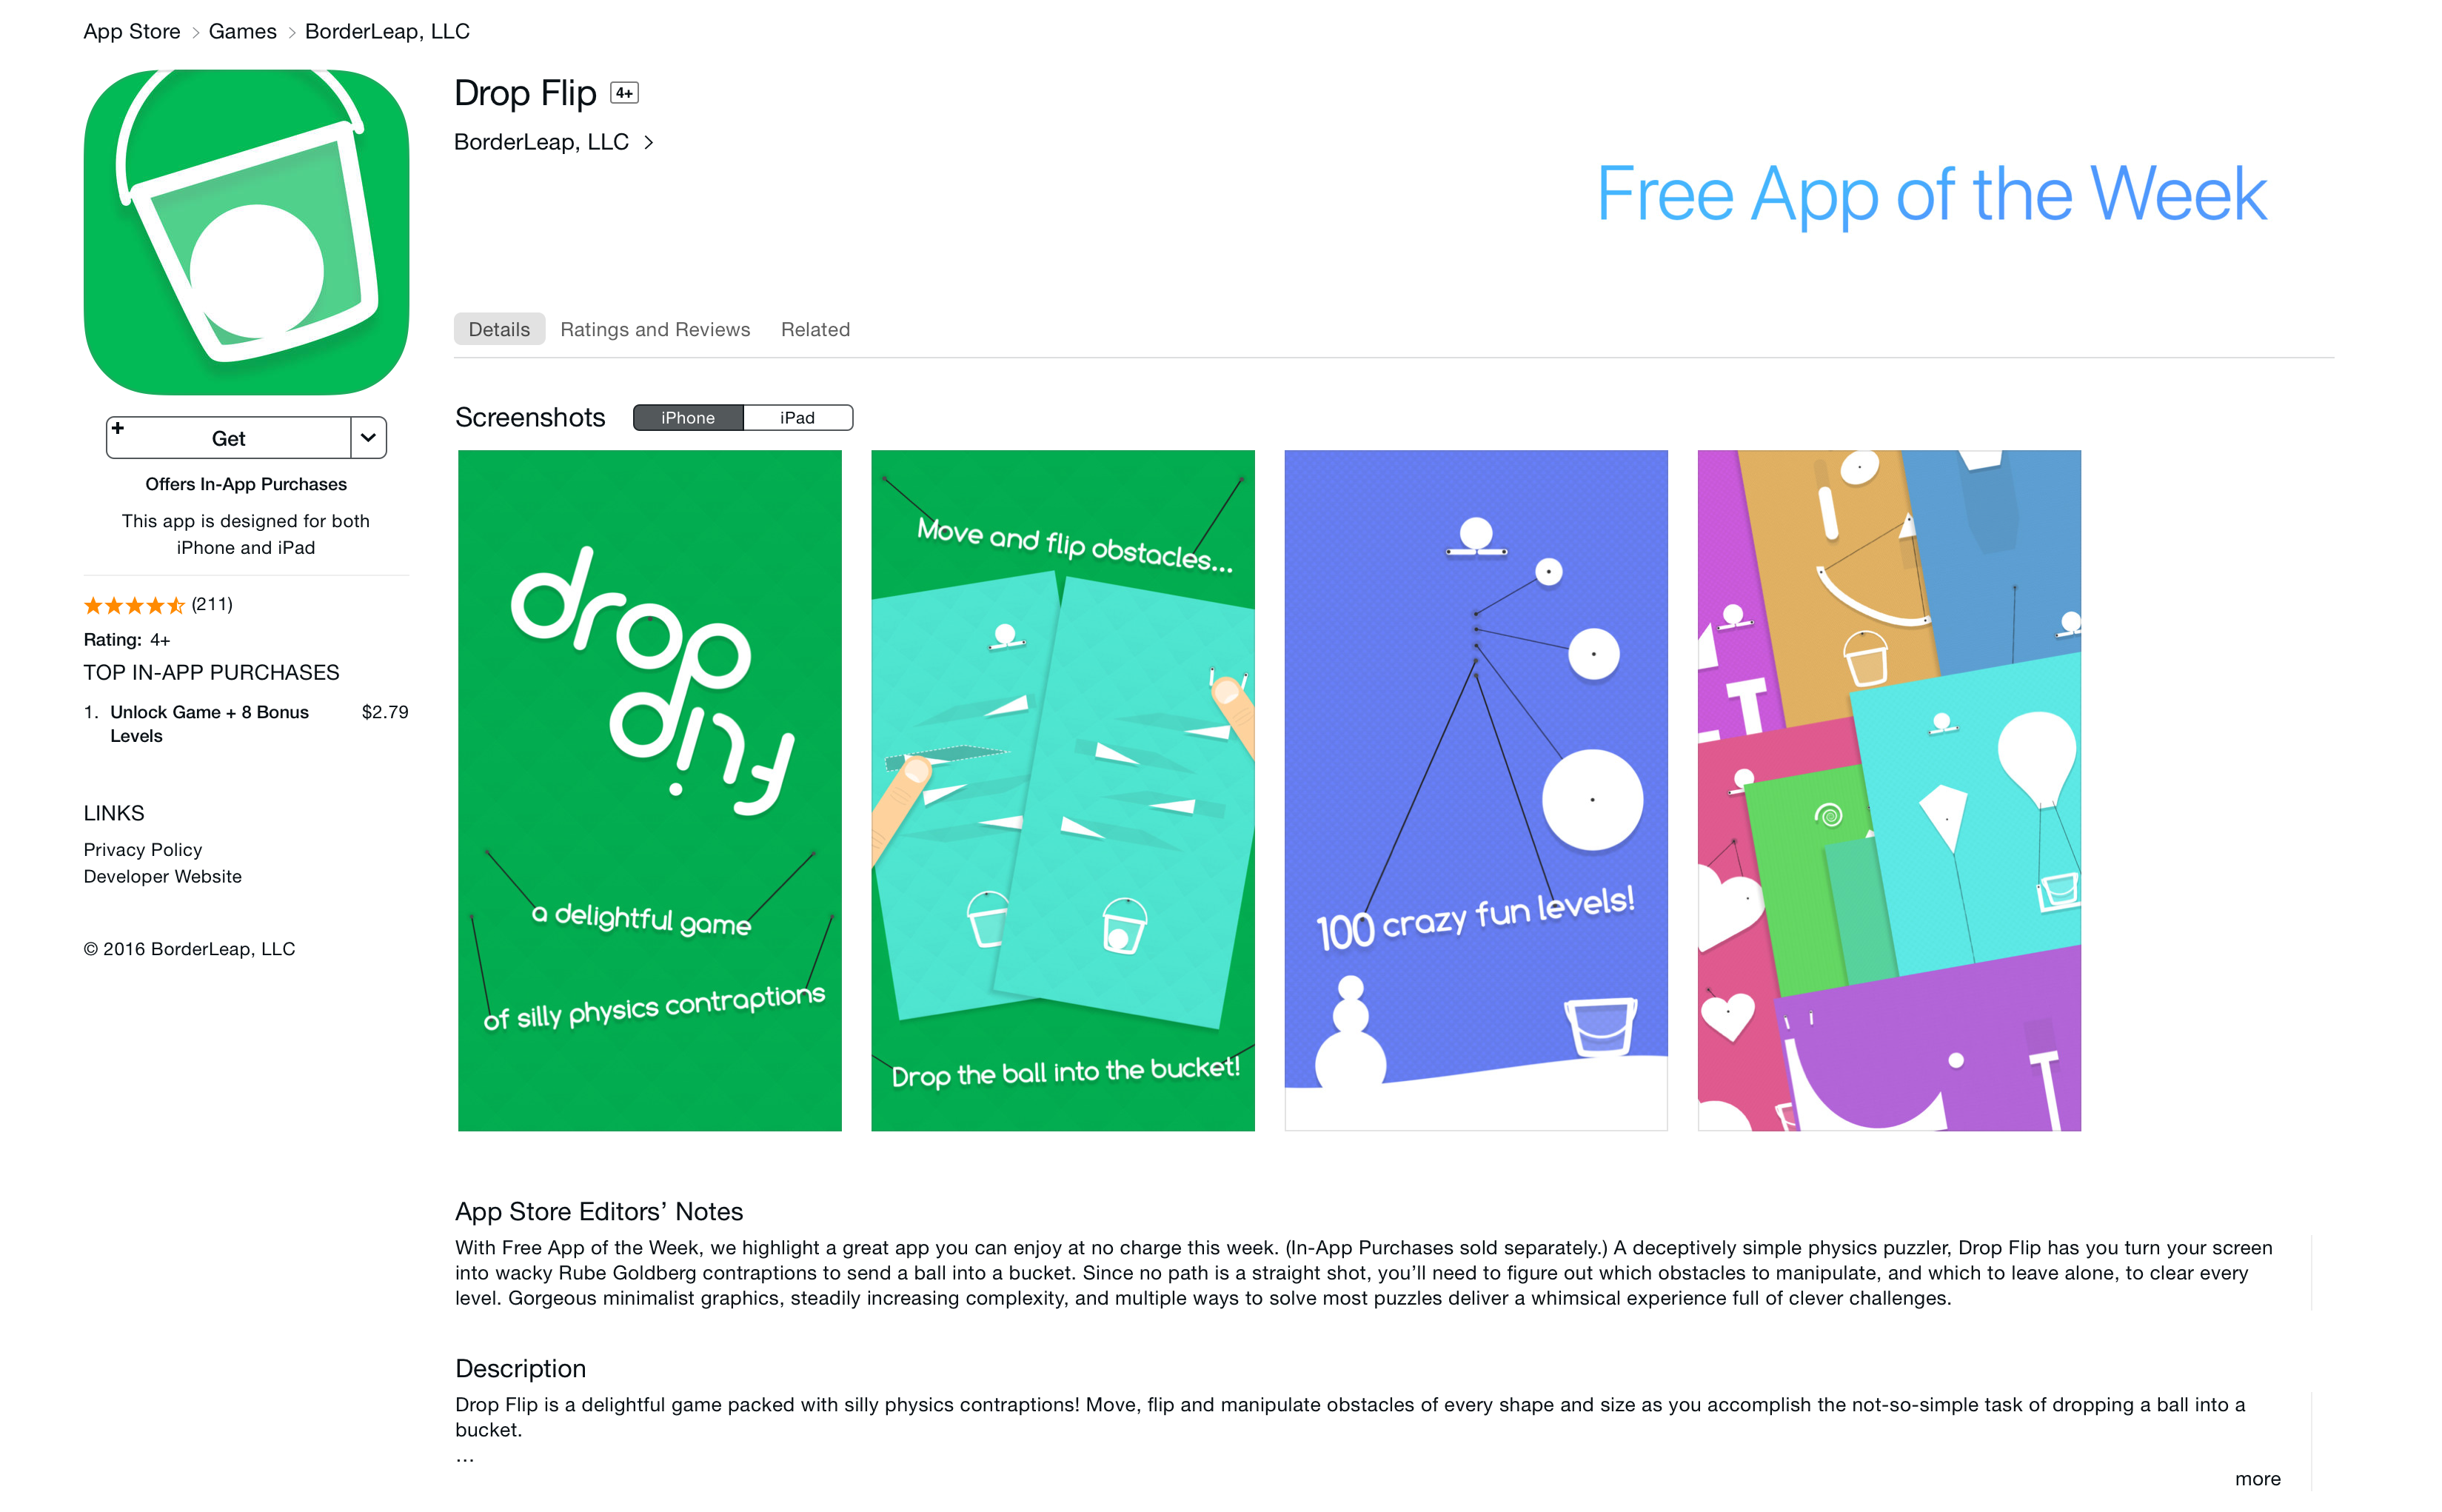 drop-flip-dree-app-of-the-week